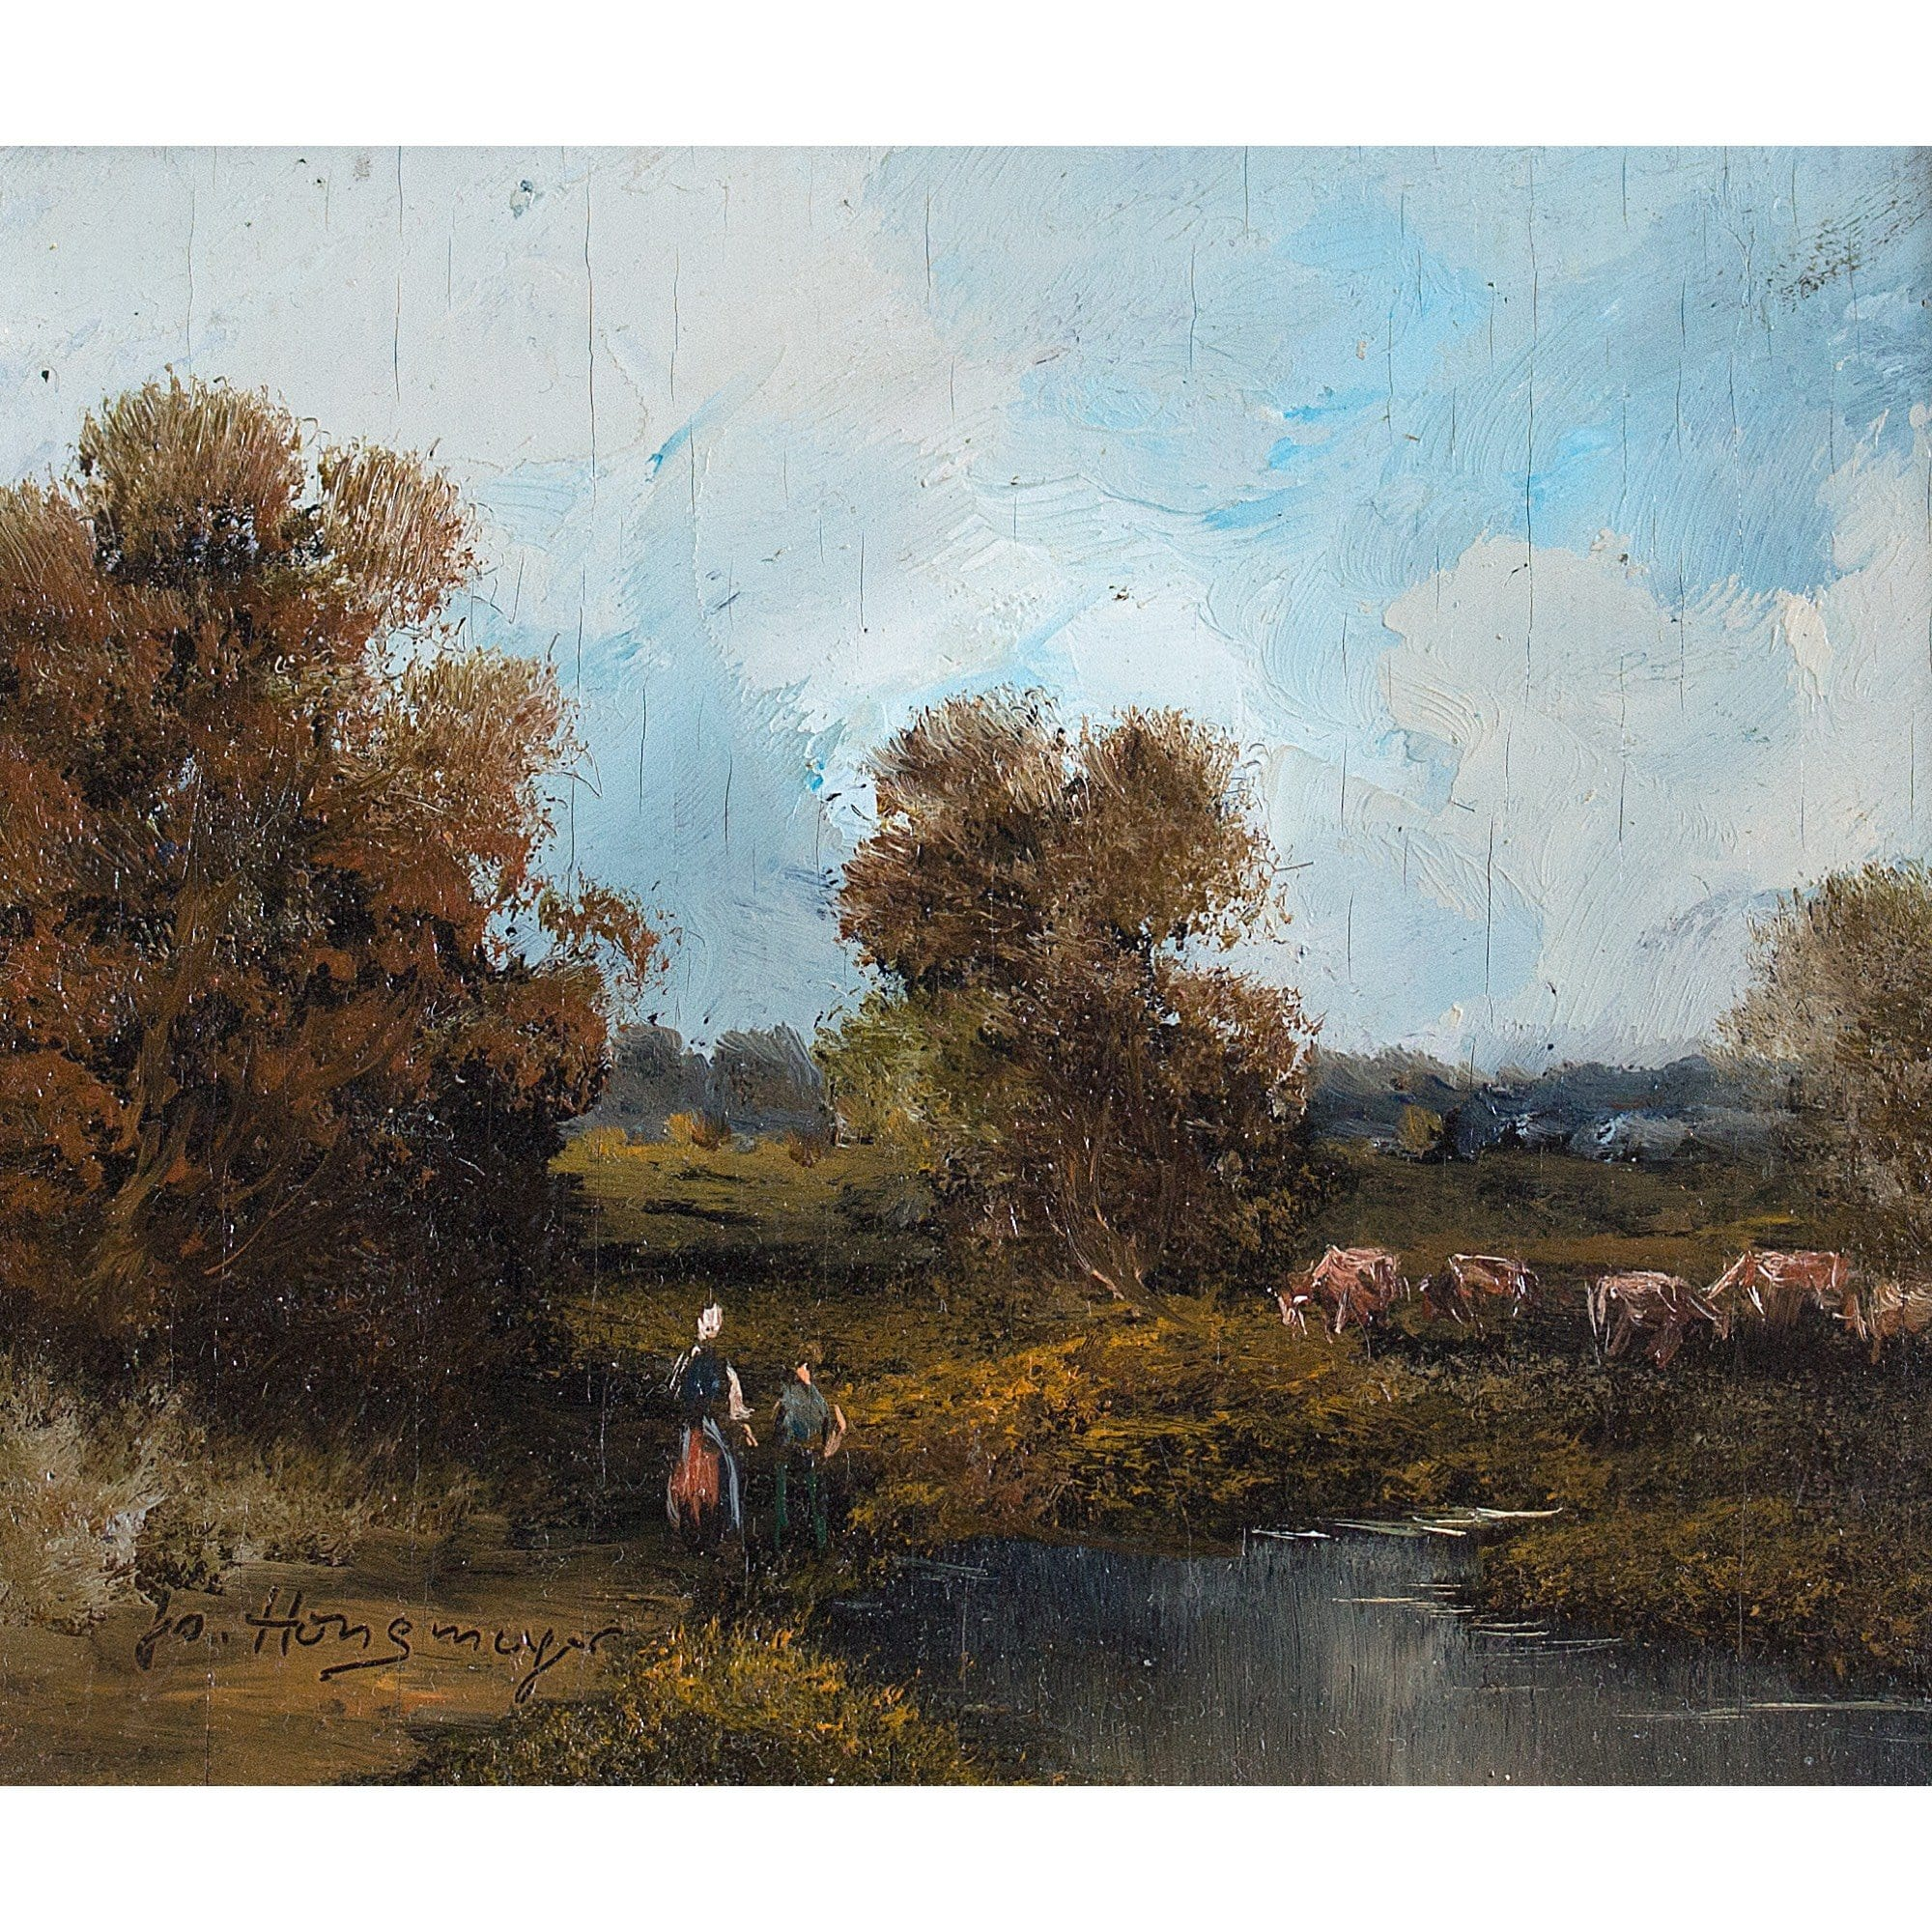 Miniature Pastoral Scene With Figures - Original Framed Painting - Vintage Art - Brave Fine Art